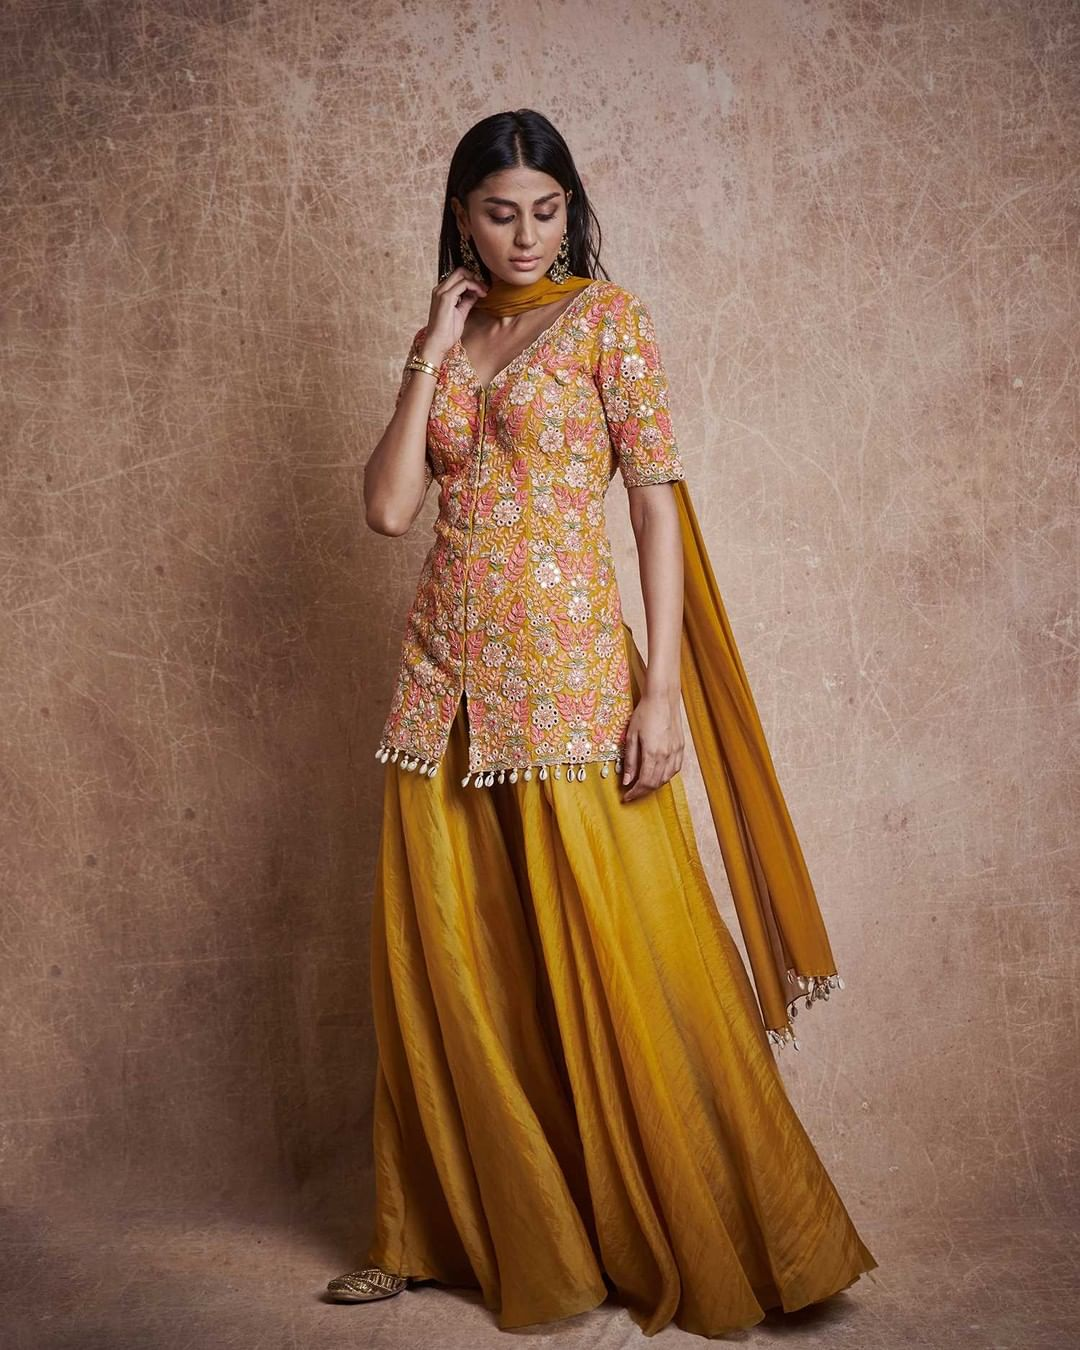 Festivities are incomplete without the mellowness of yellow! Find yellow treasure in Camel tiered sharara with fan flower embroidered kurta with cowrie shell detailing and chiffon dupatta.   For further enquiries please connect with  team on +91 7506633202 via call or WhatsApp. 2021-07-31